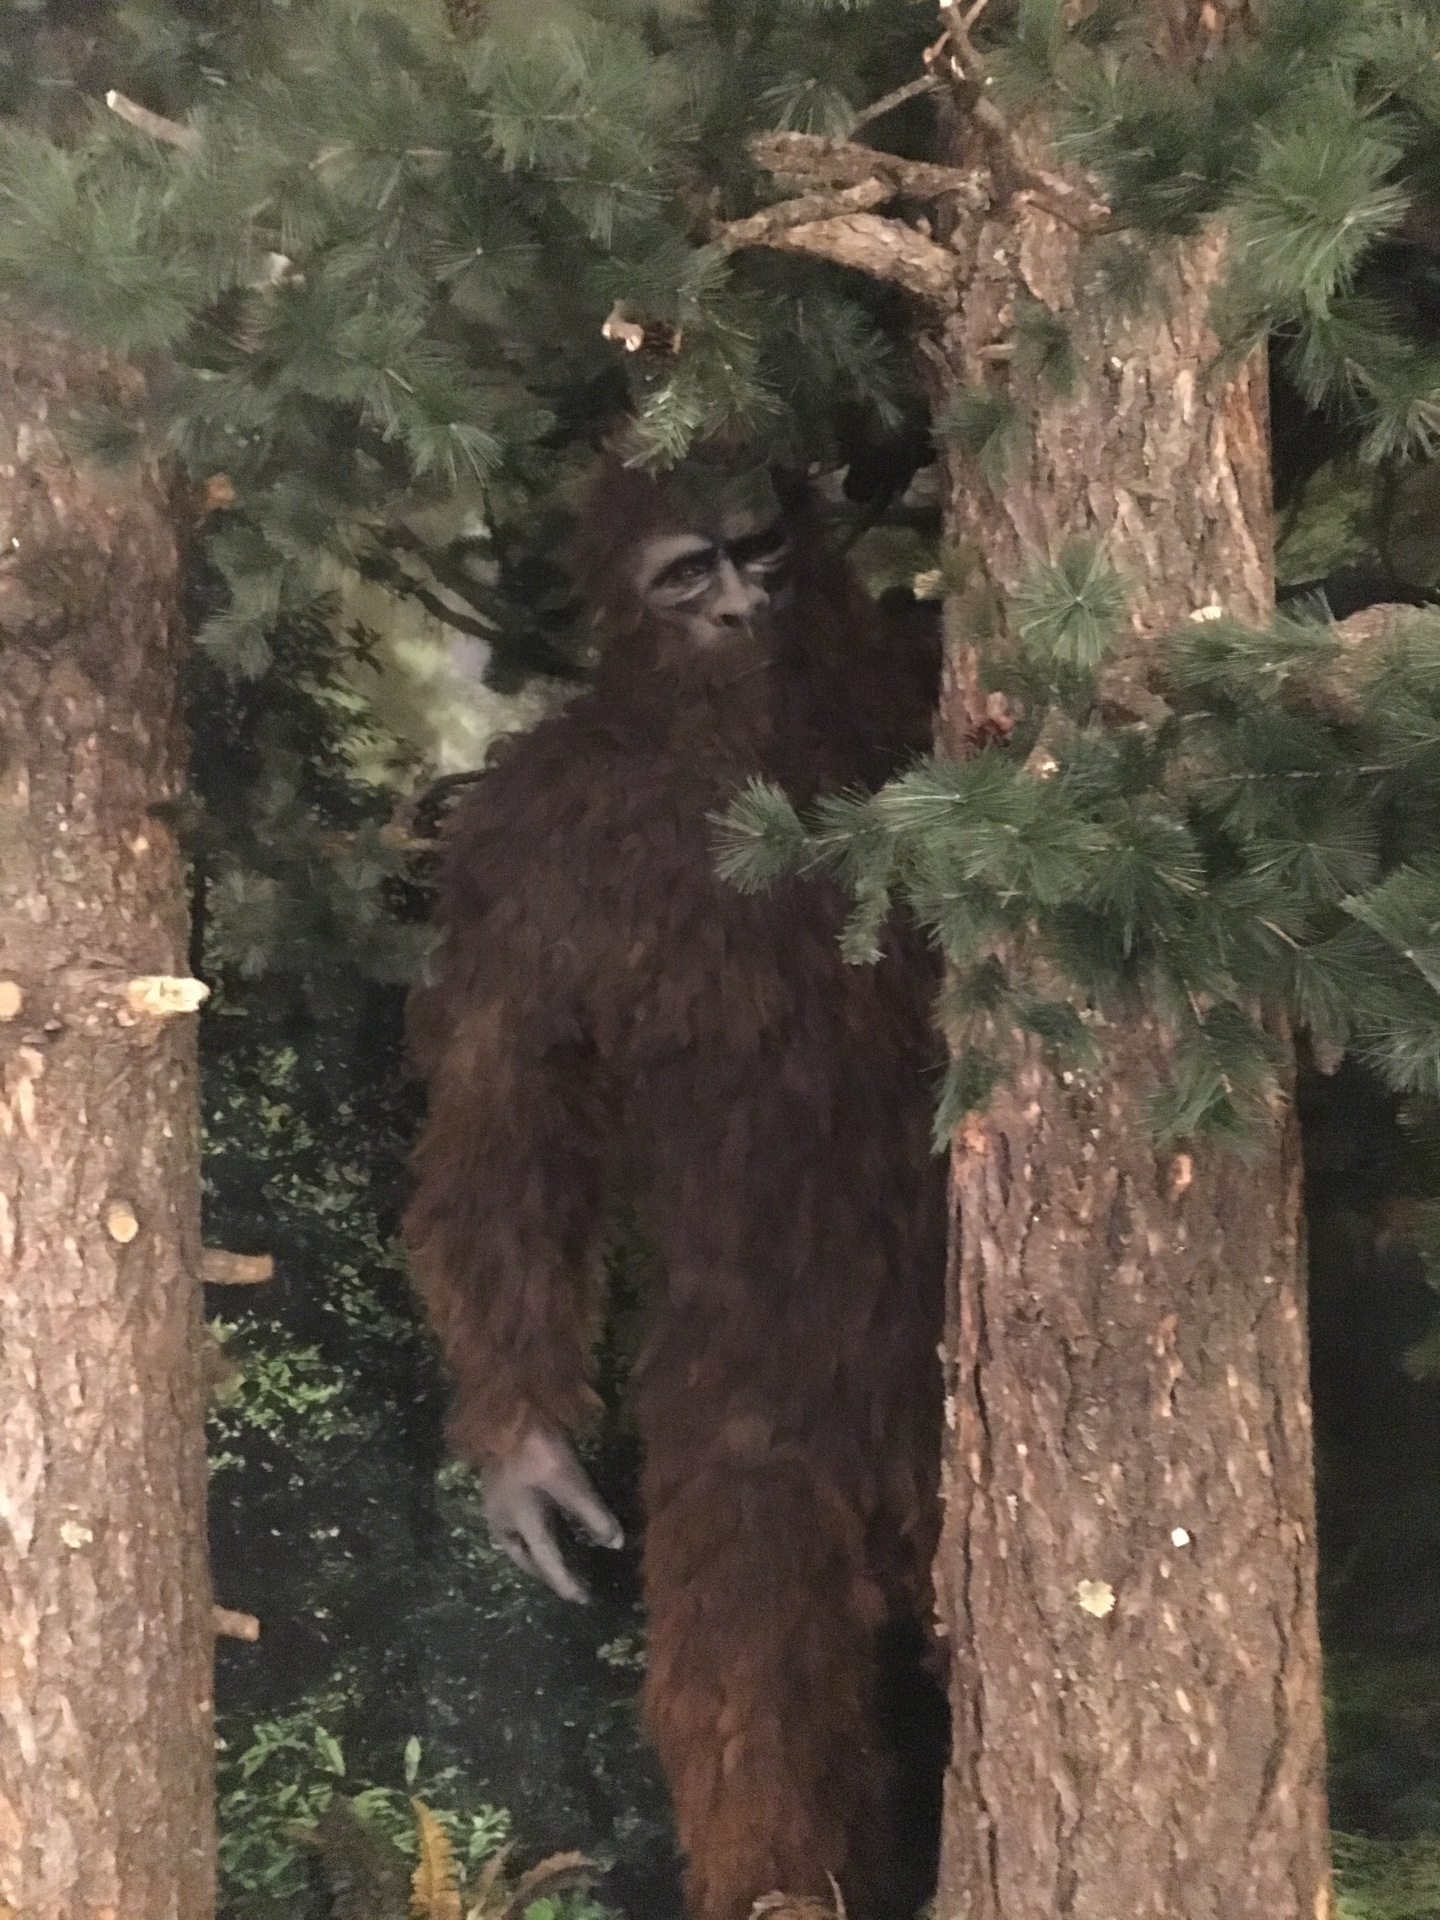 Grand Opening of the Sasquatch Encounter